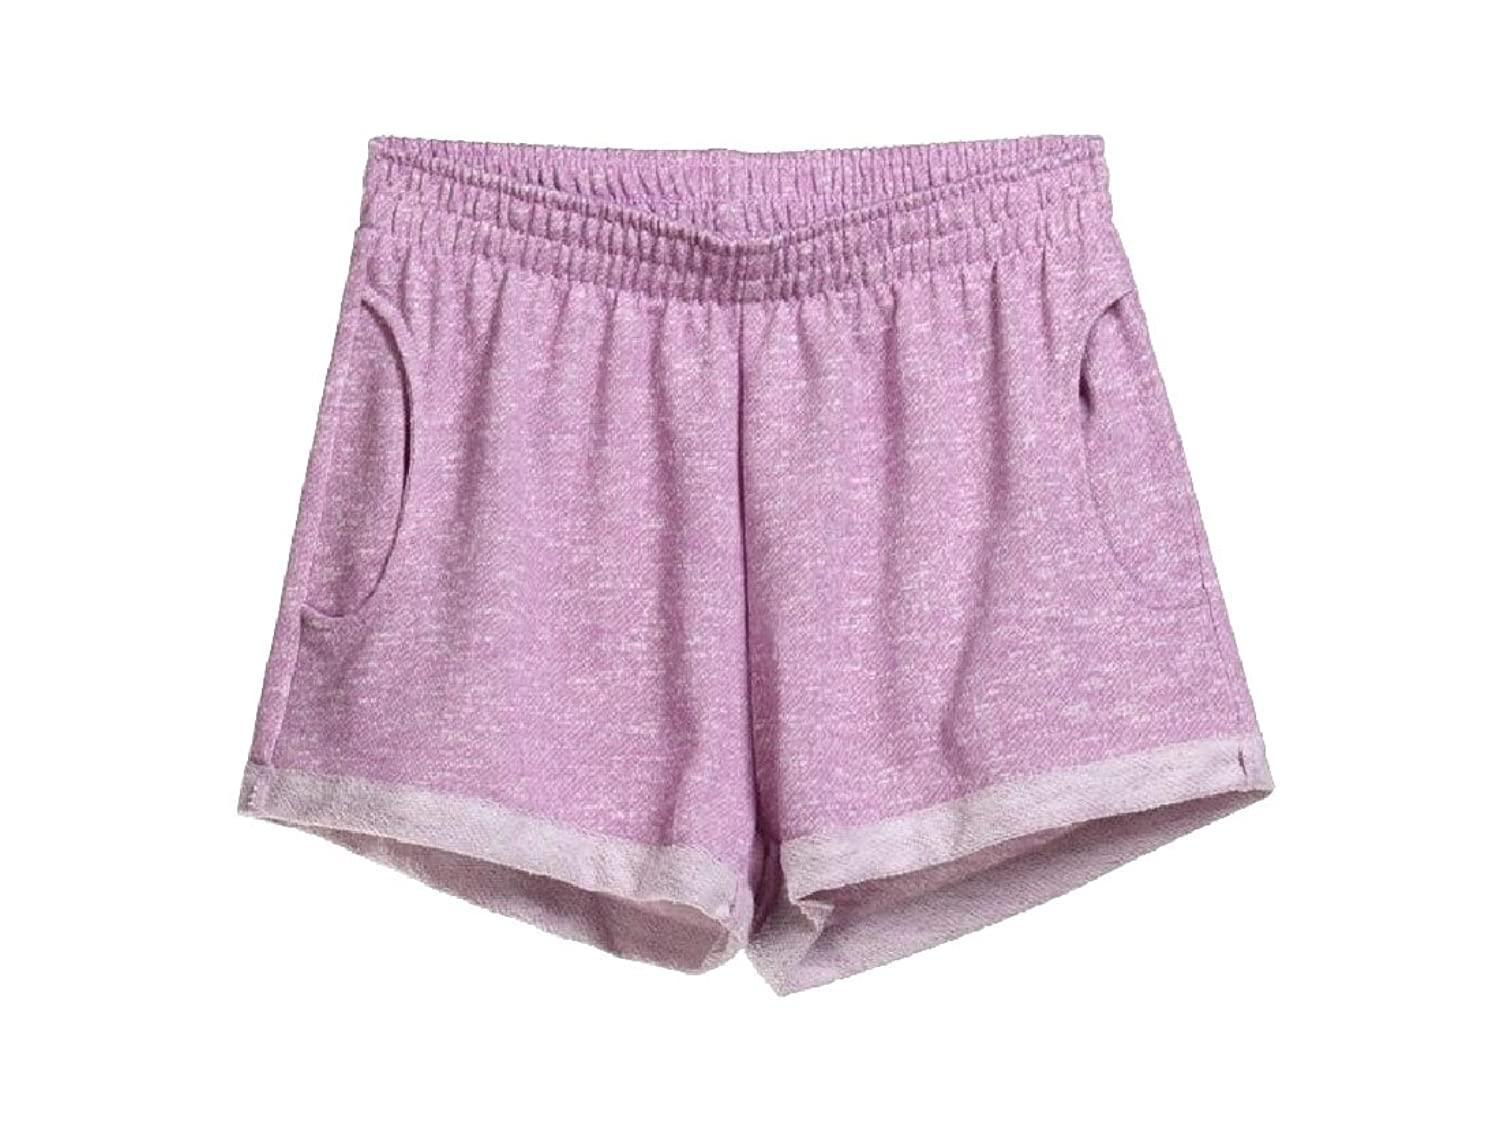 Abetteric Women Thin Summer Hot Pants Sleep Pant Yoga Soft Cozy Crimping Gym Shorts Light Purple M